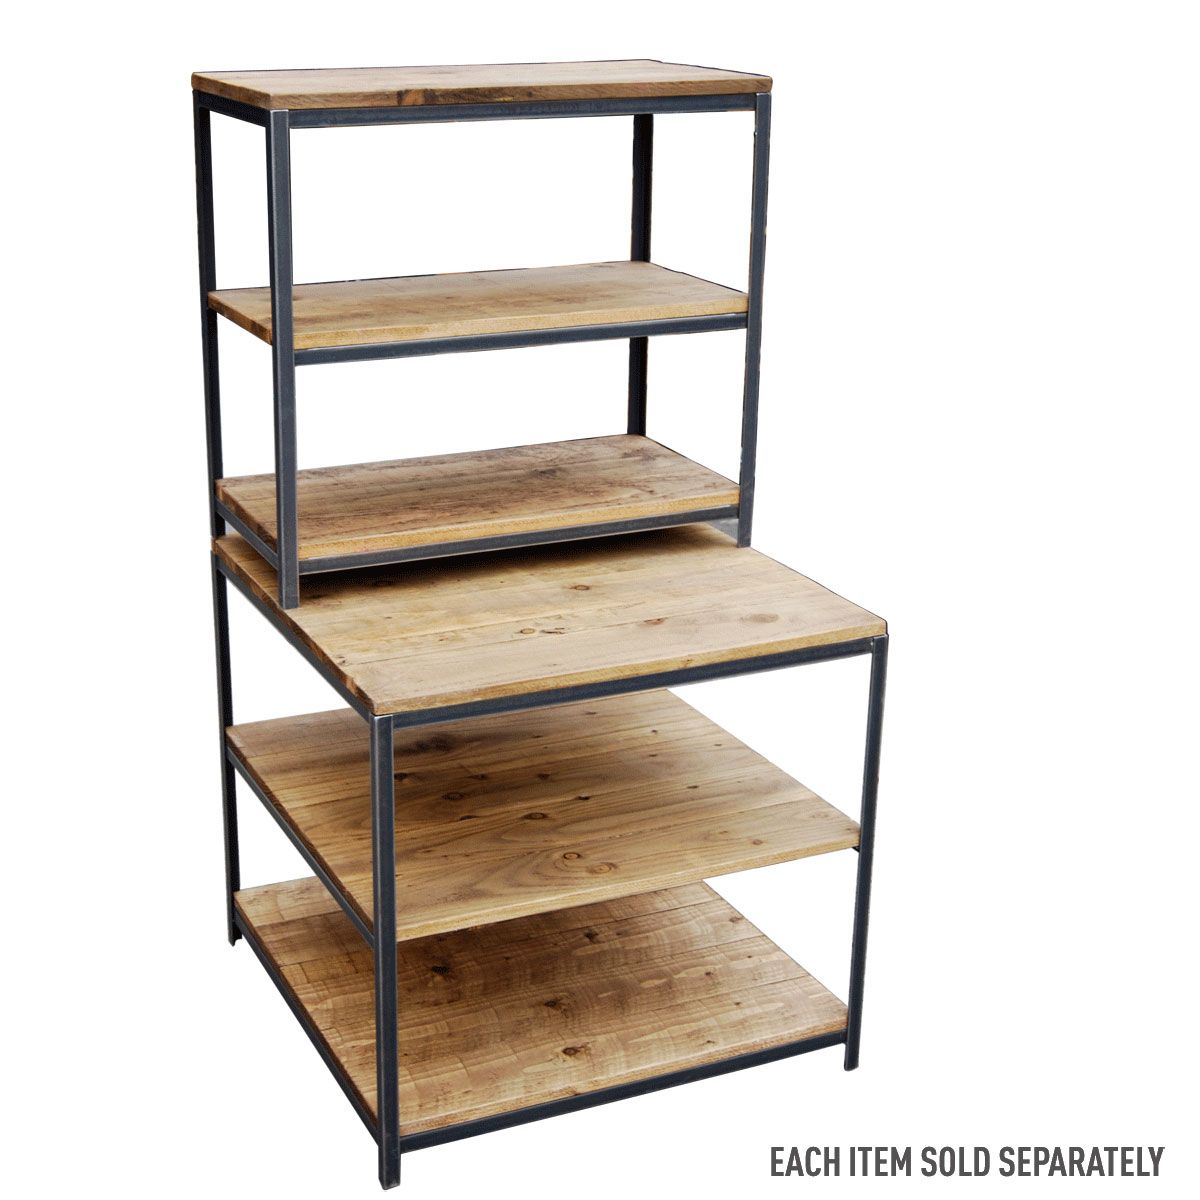 Table Stores: Small Mid-Floor Retail Display Table